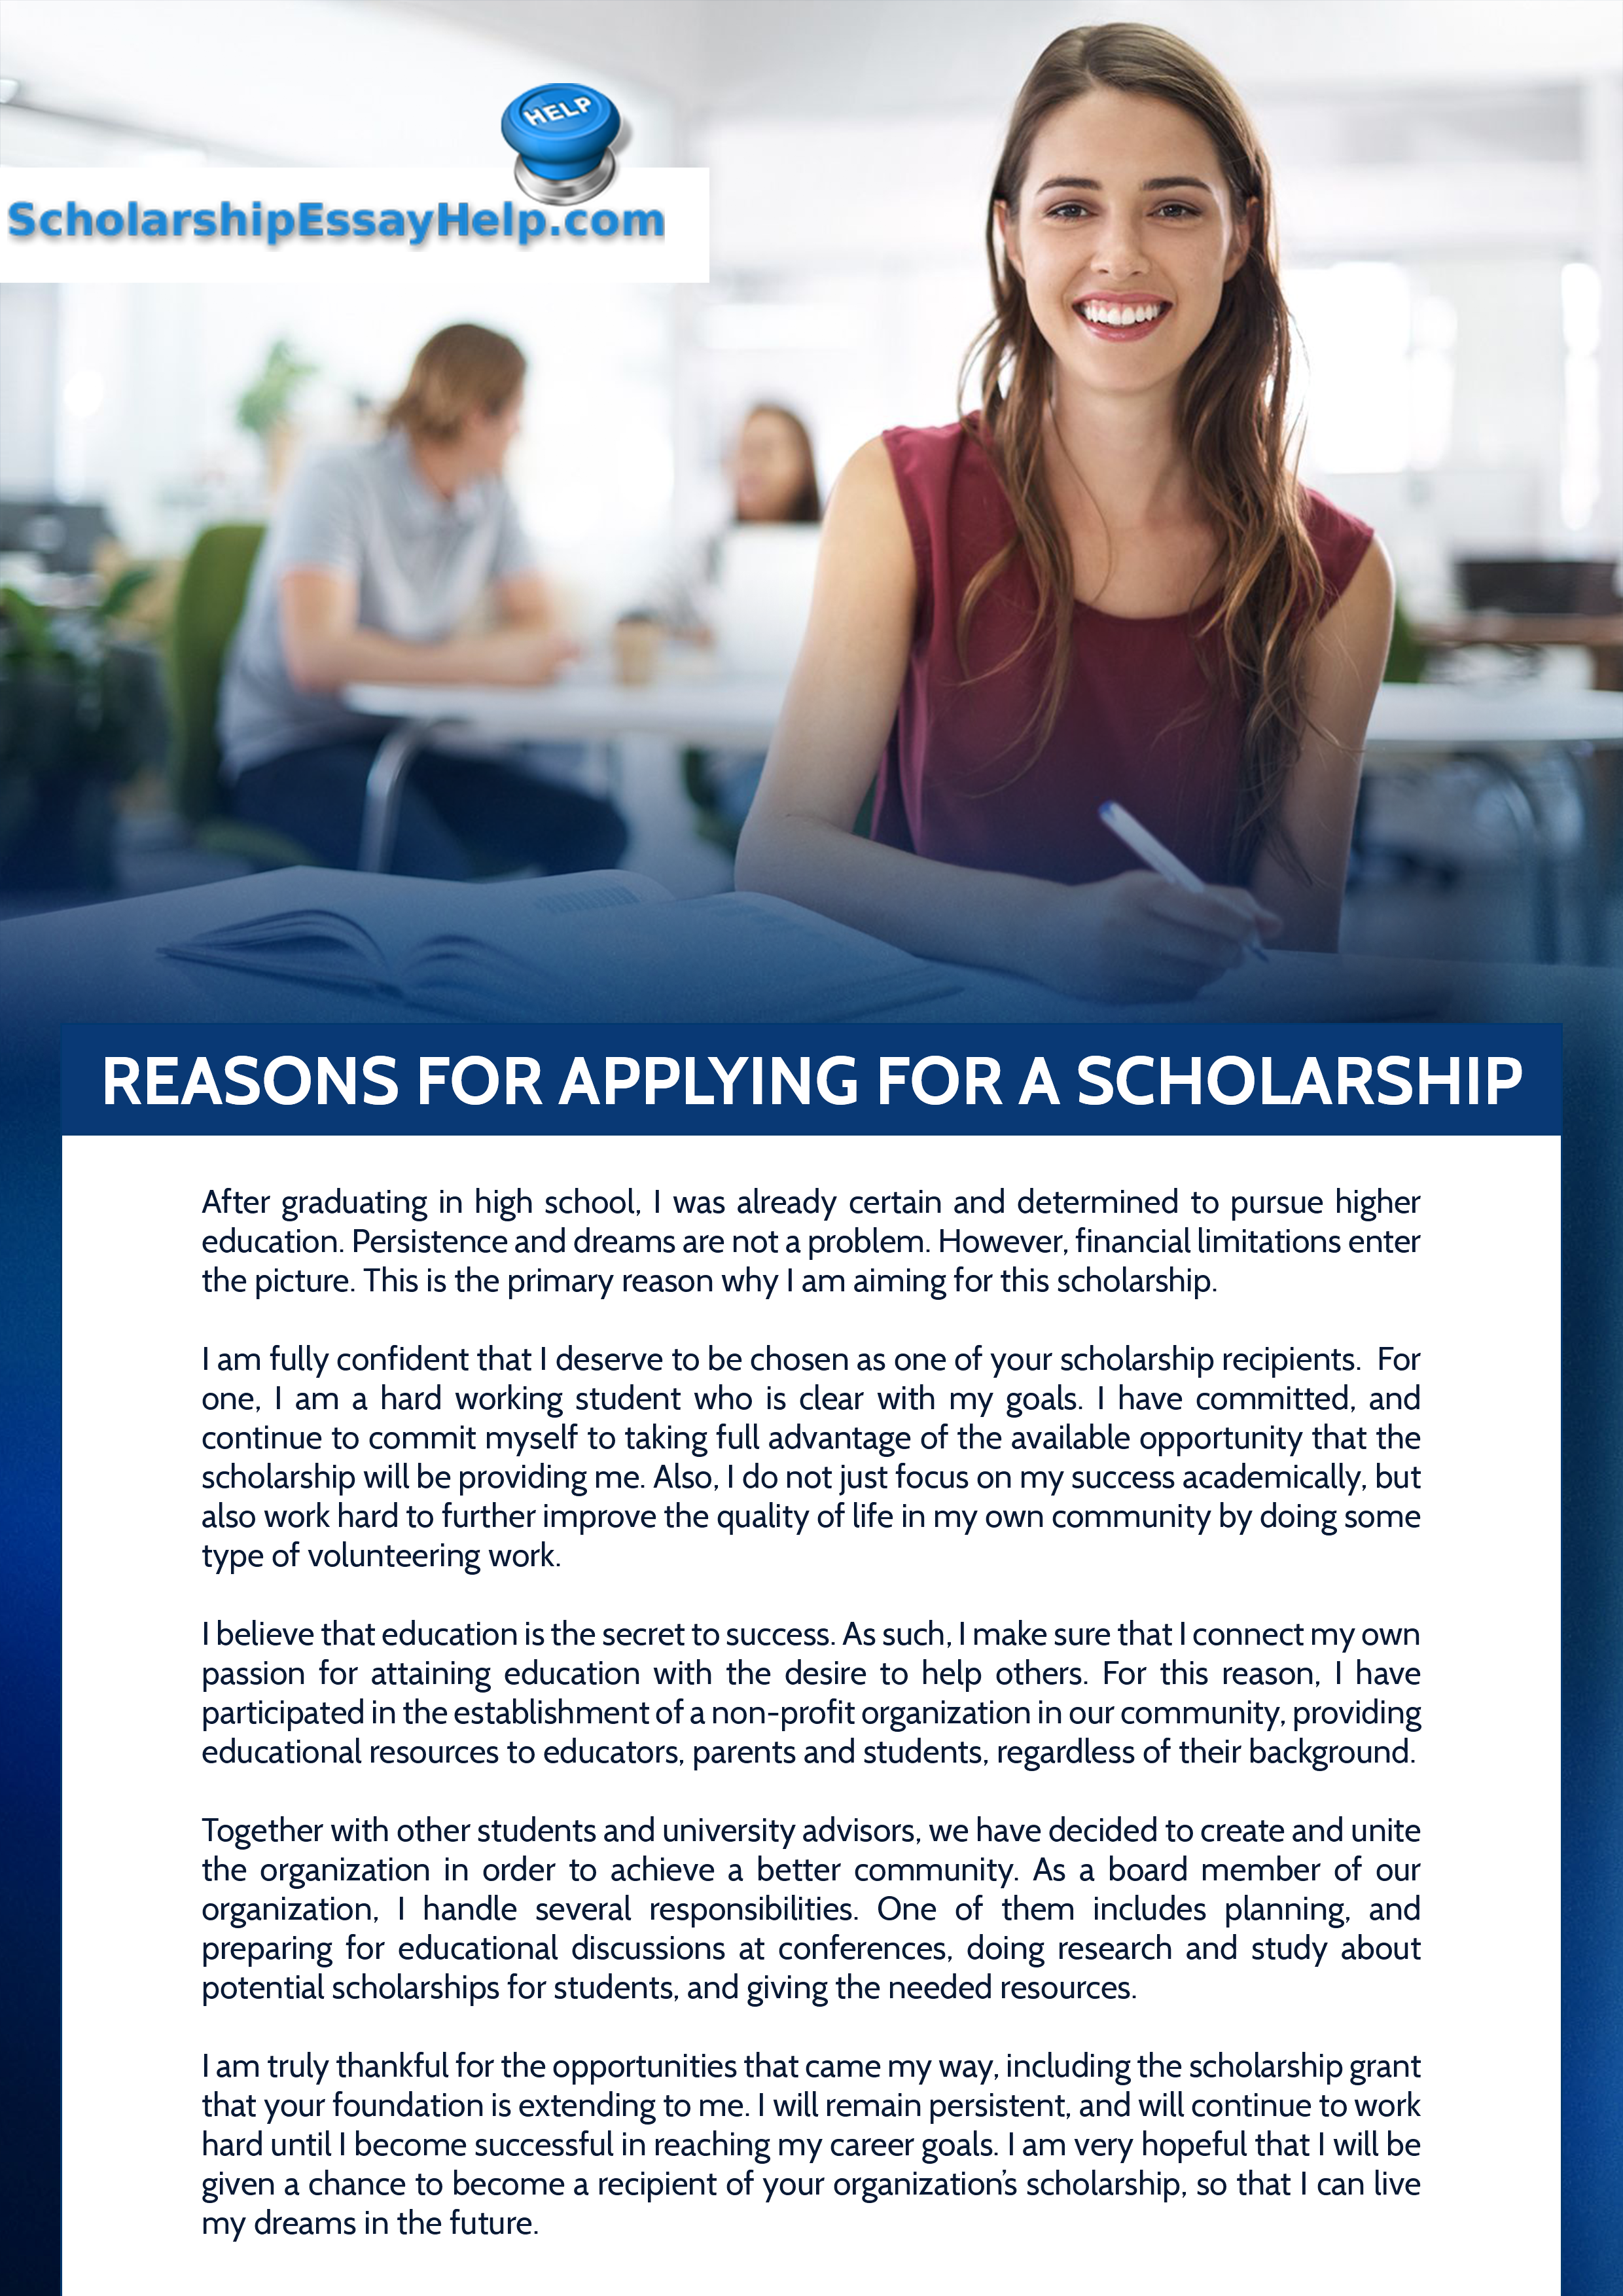 013 Reasons For Applying Scholarship Why I Deserve This Essay Top How To Write Pdf Sample Full